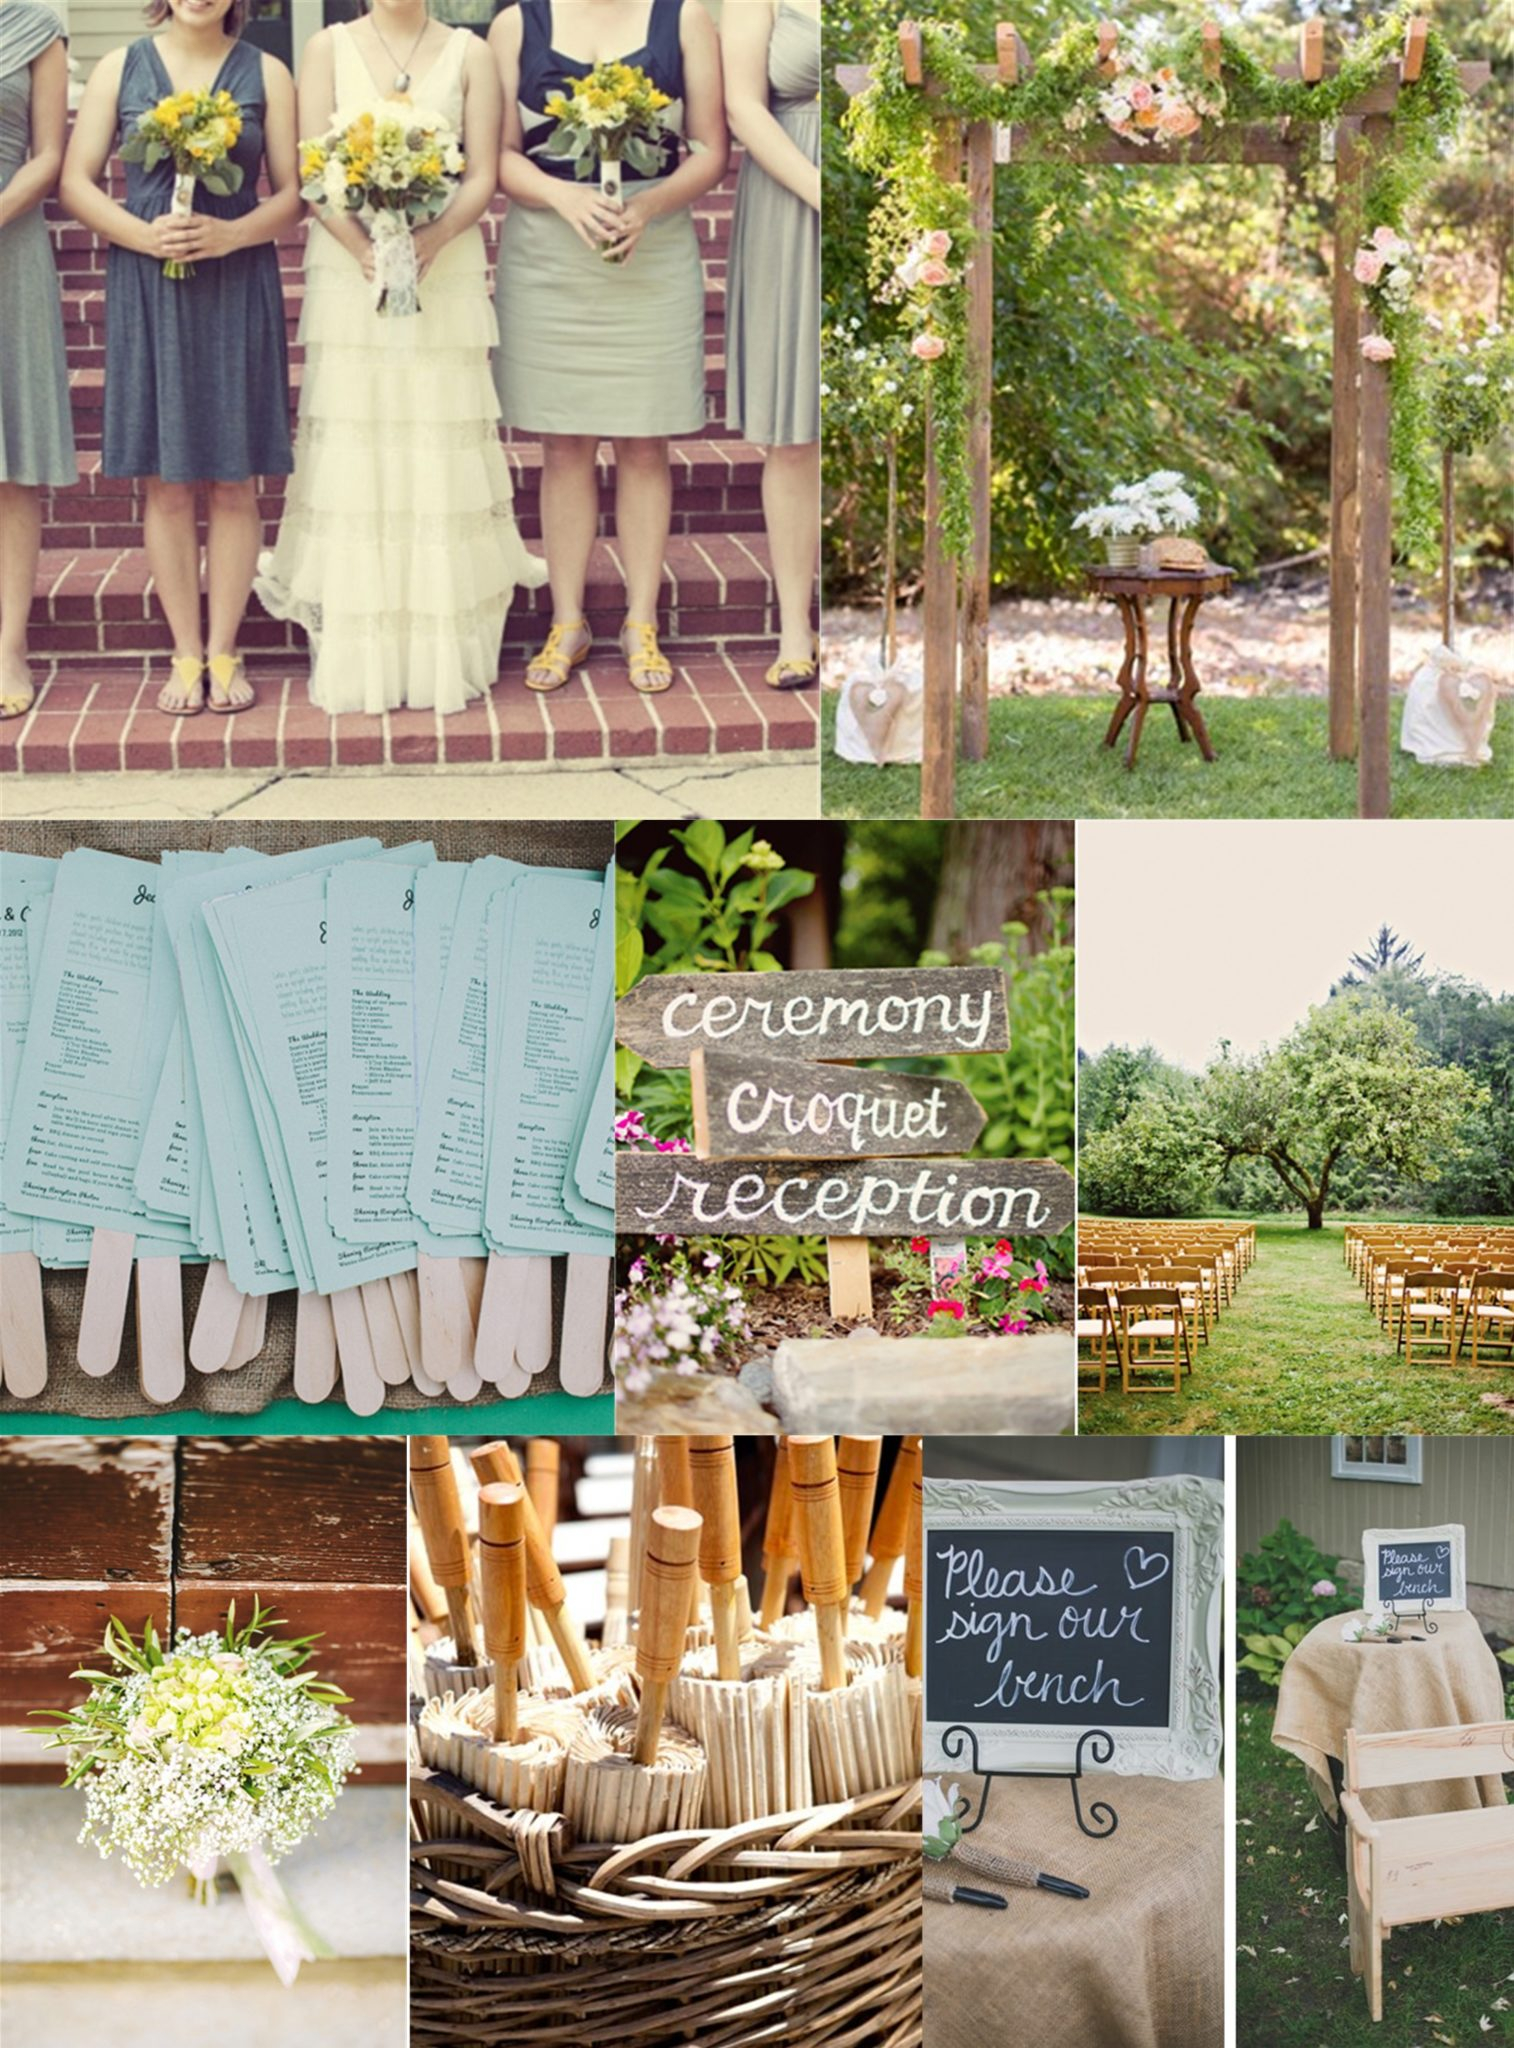 Essential Guide To A Backyard Wedding On A Budget for 13 Genius Initiatives of How to Upgrade Small Backyard Wedding Ideas